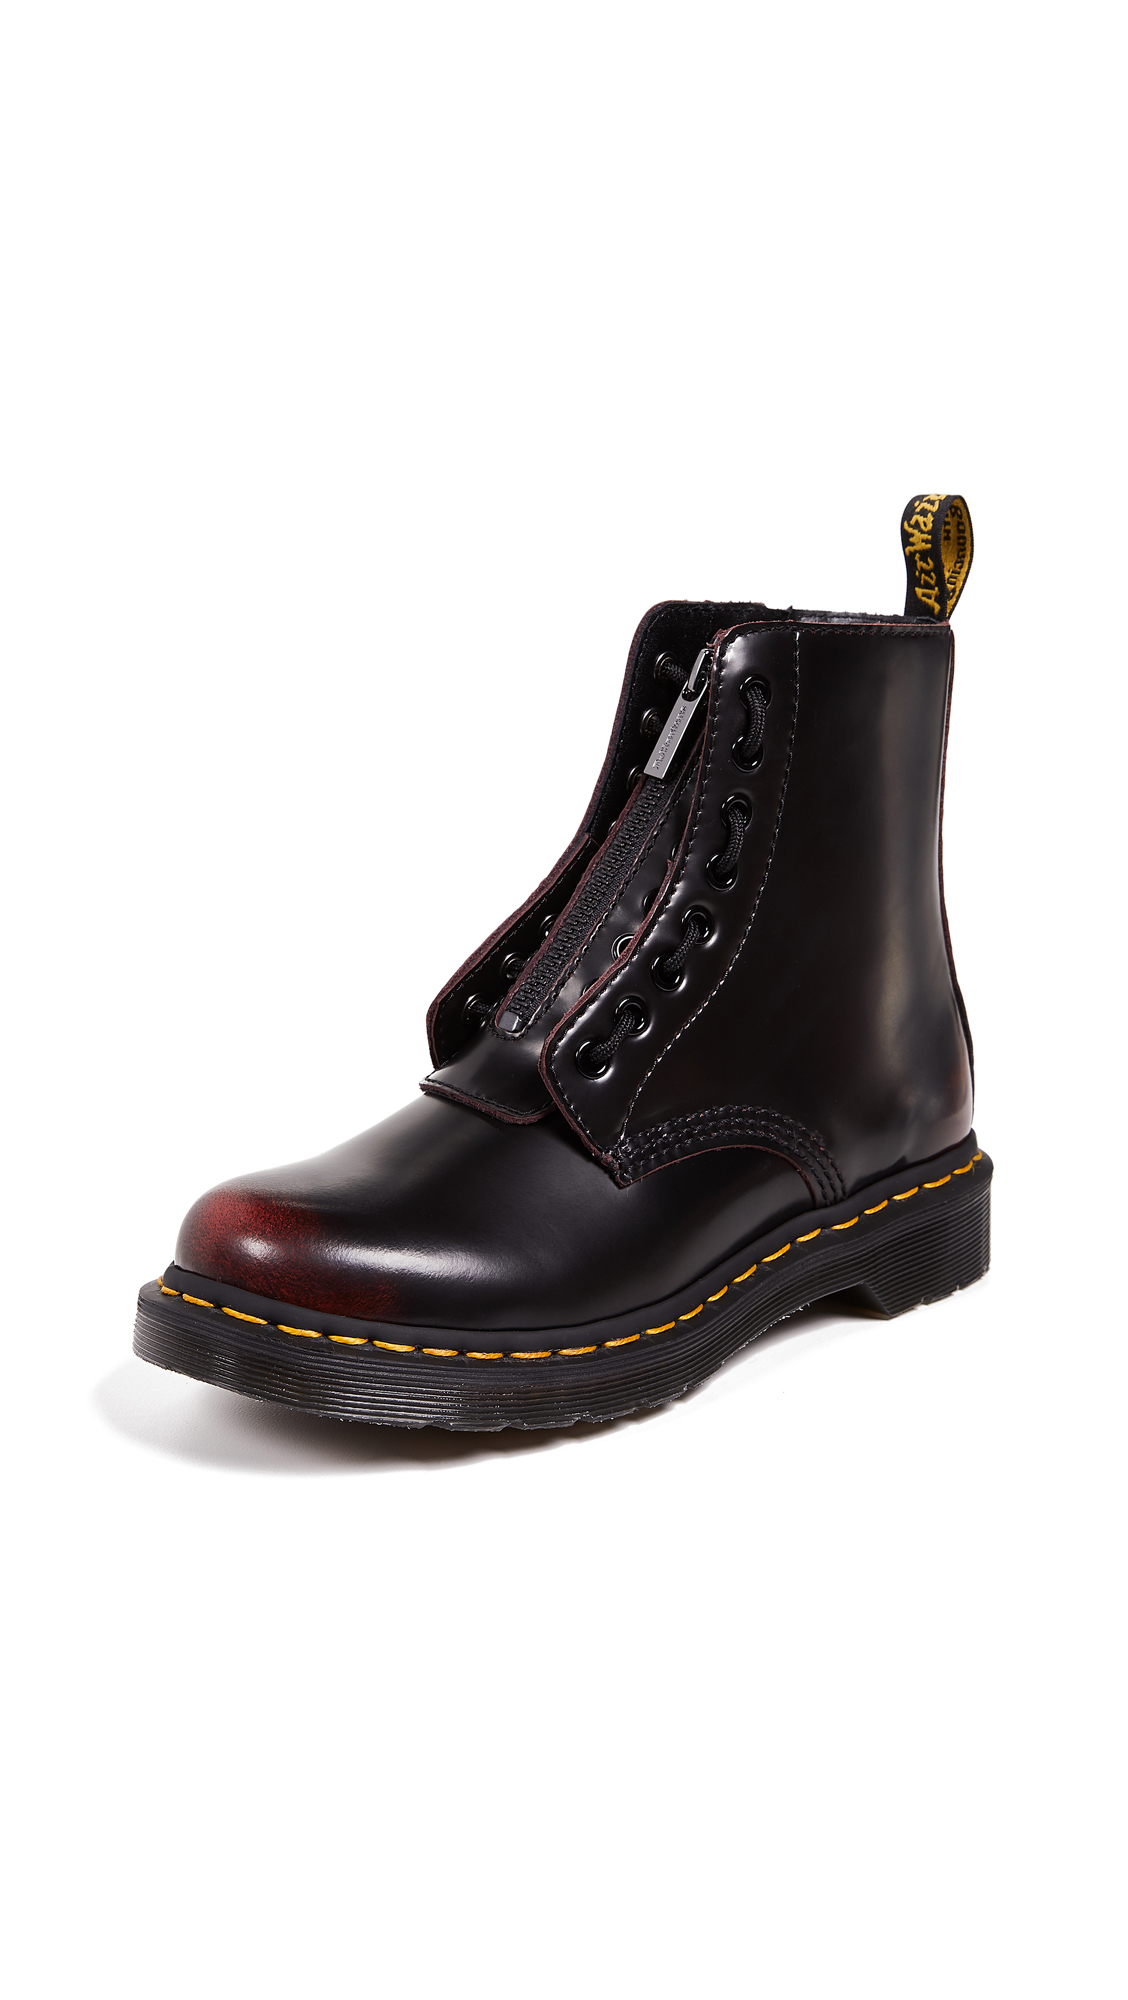 Dr. Martens 1460 Pascal Front Zip 8 Eye Boots - Cherry Red